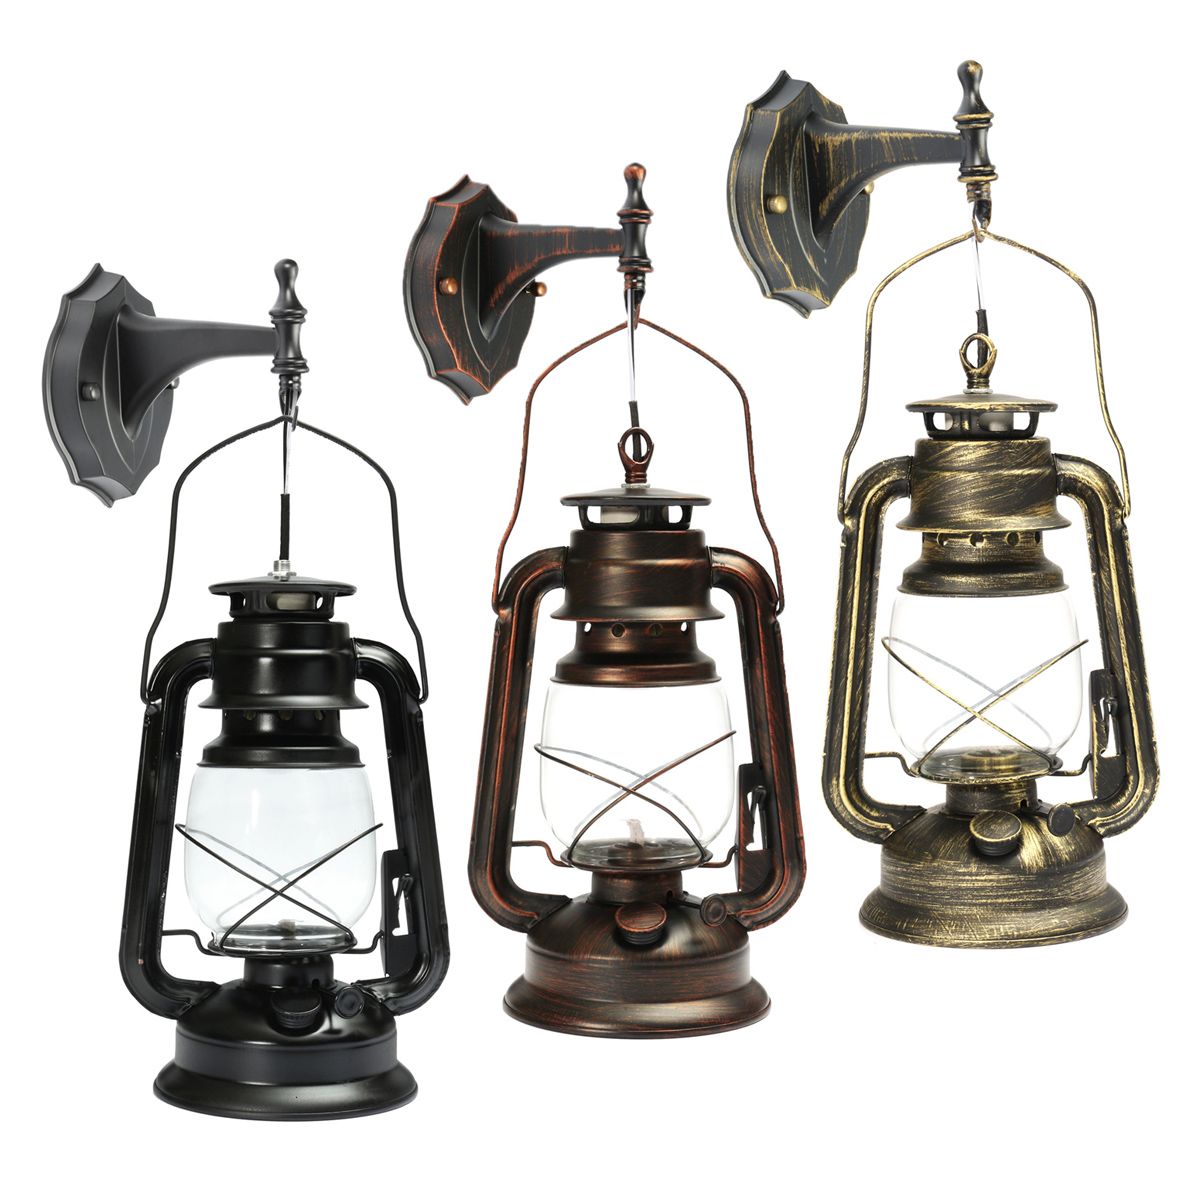 Antique Wall Lantern Outdoor Vintage E27 Wall Lamp Garden Light Lighting Fixture Fitting with Bulb For Bar Dining Living Room Cafe Home